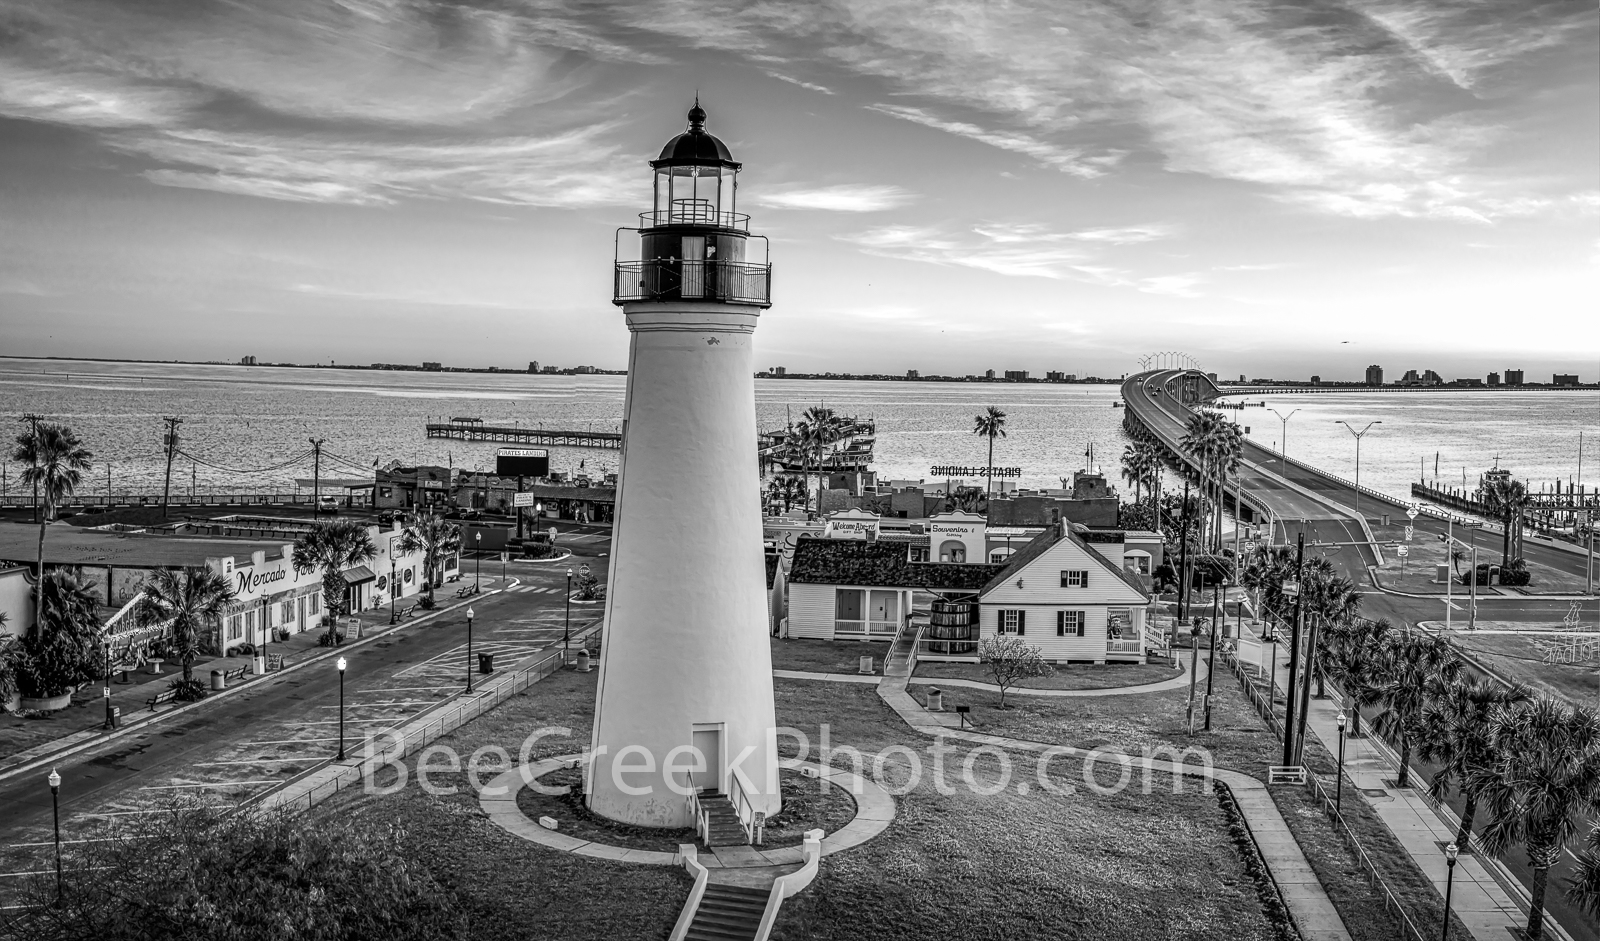 Sunrise at Port Isabel Lighthouse BW - Port isabel lighthouse was built in 1852 for the sea capitains to help them navigate the...